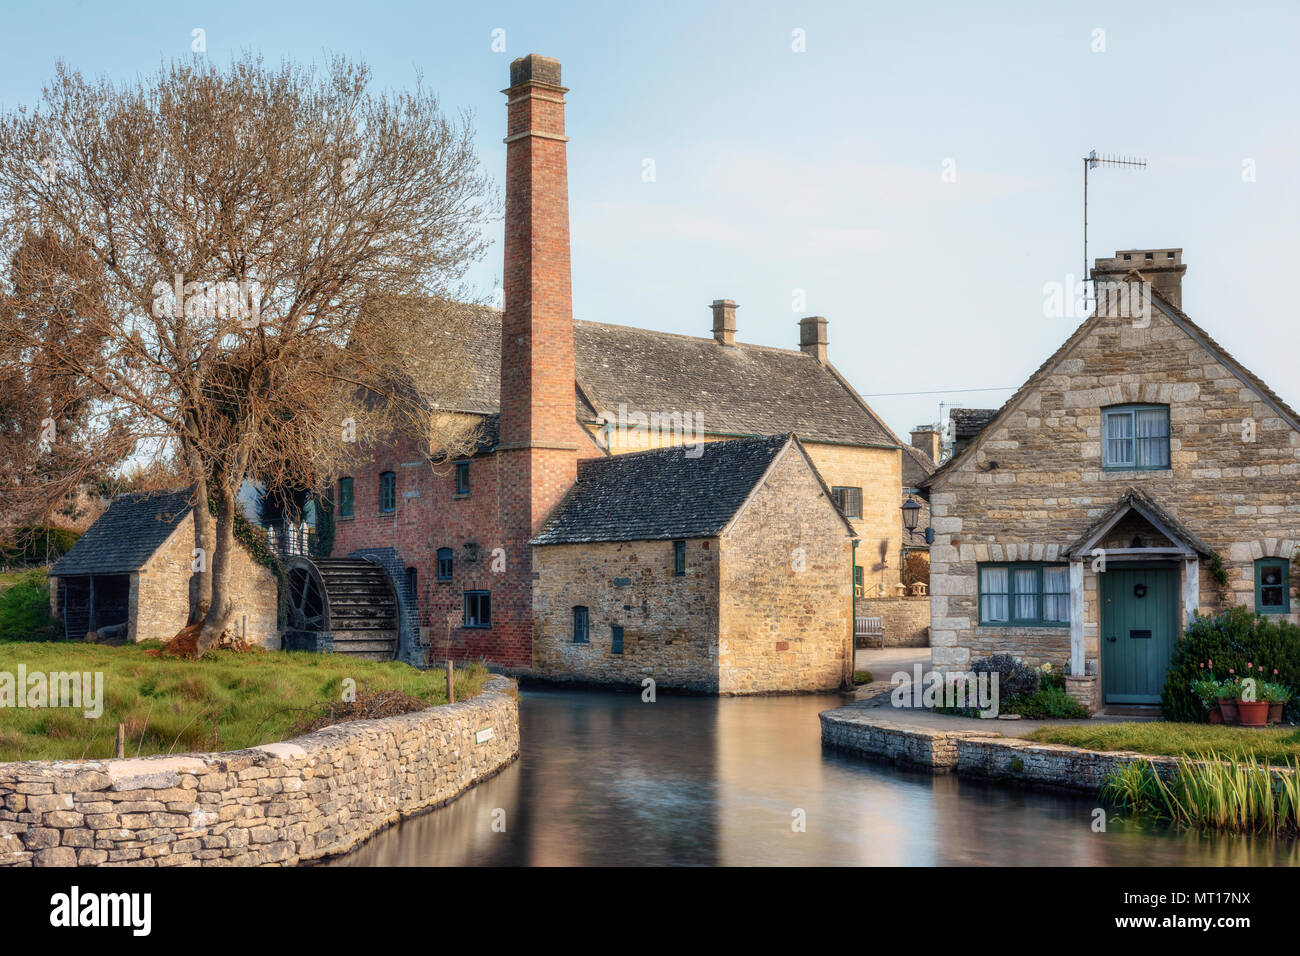 Lower Slaughter, Cotswold, Gloucestershire, England, UK - Stock Image